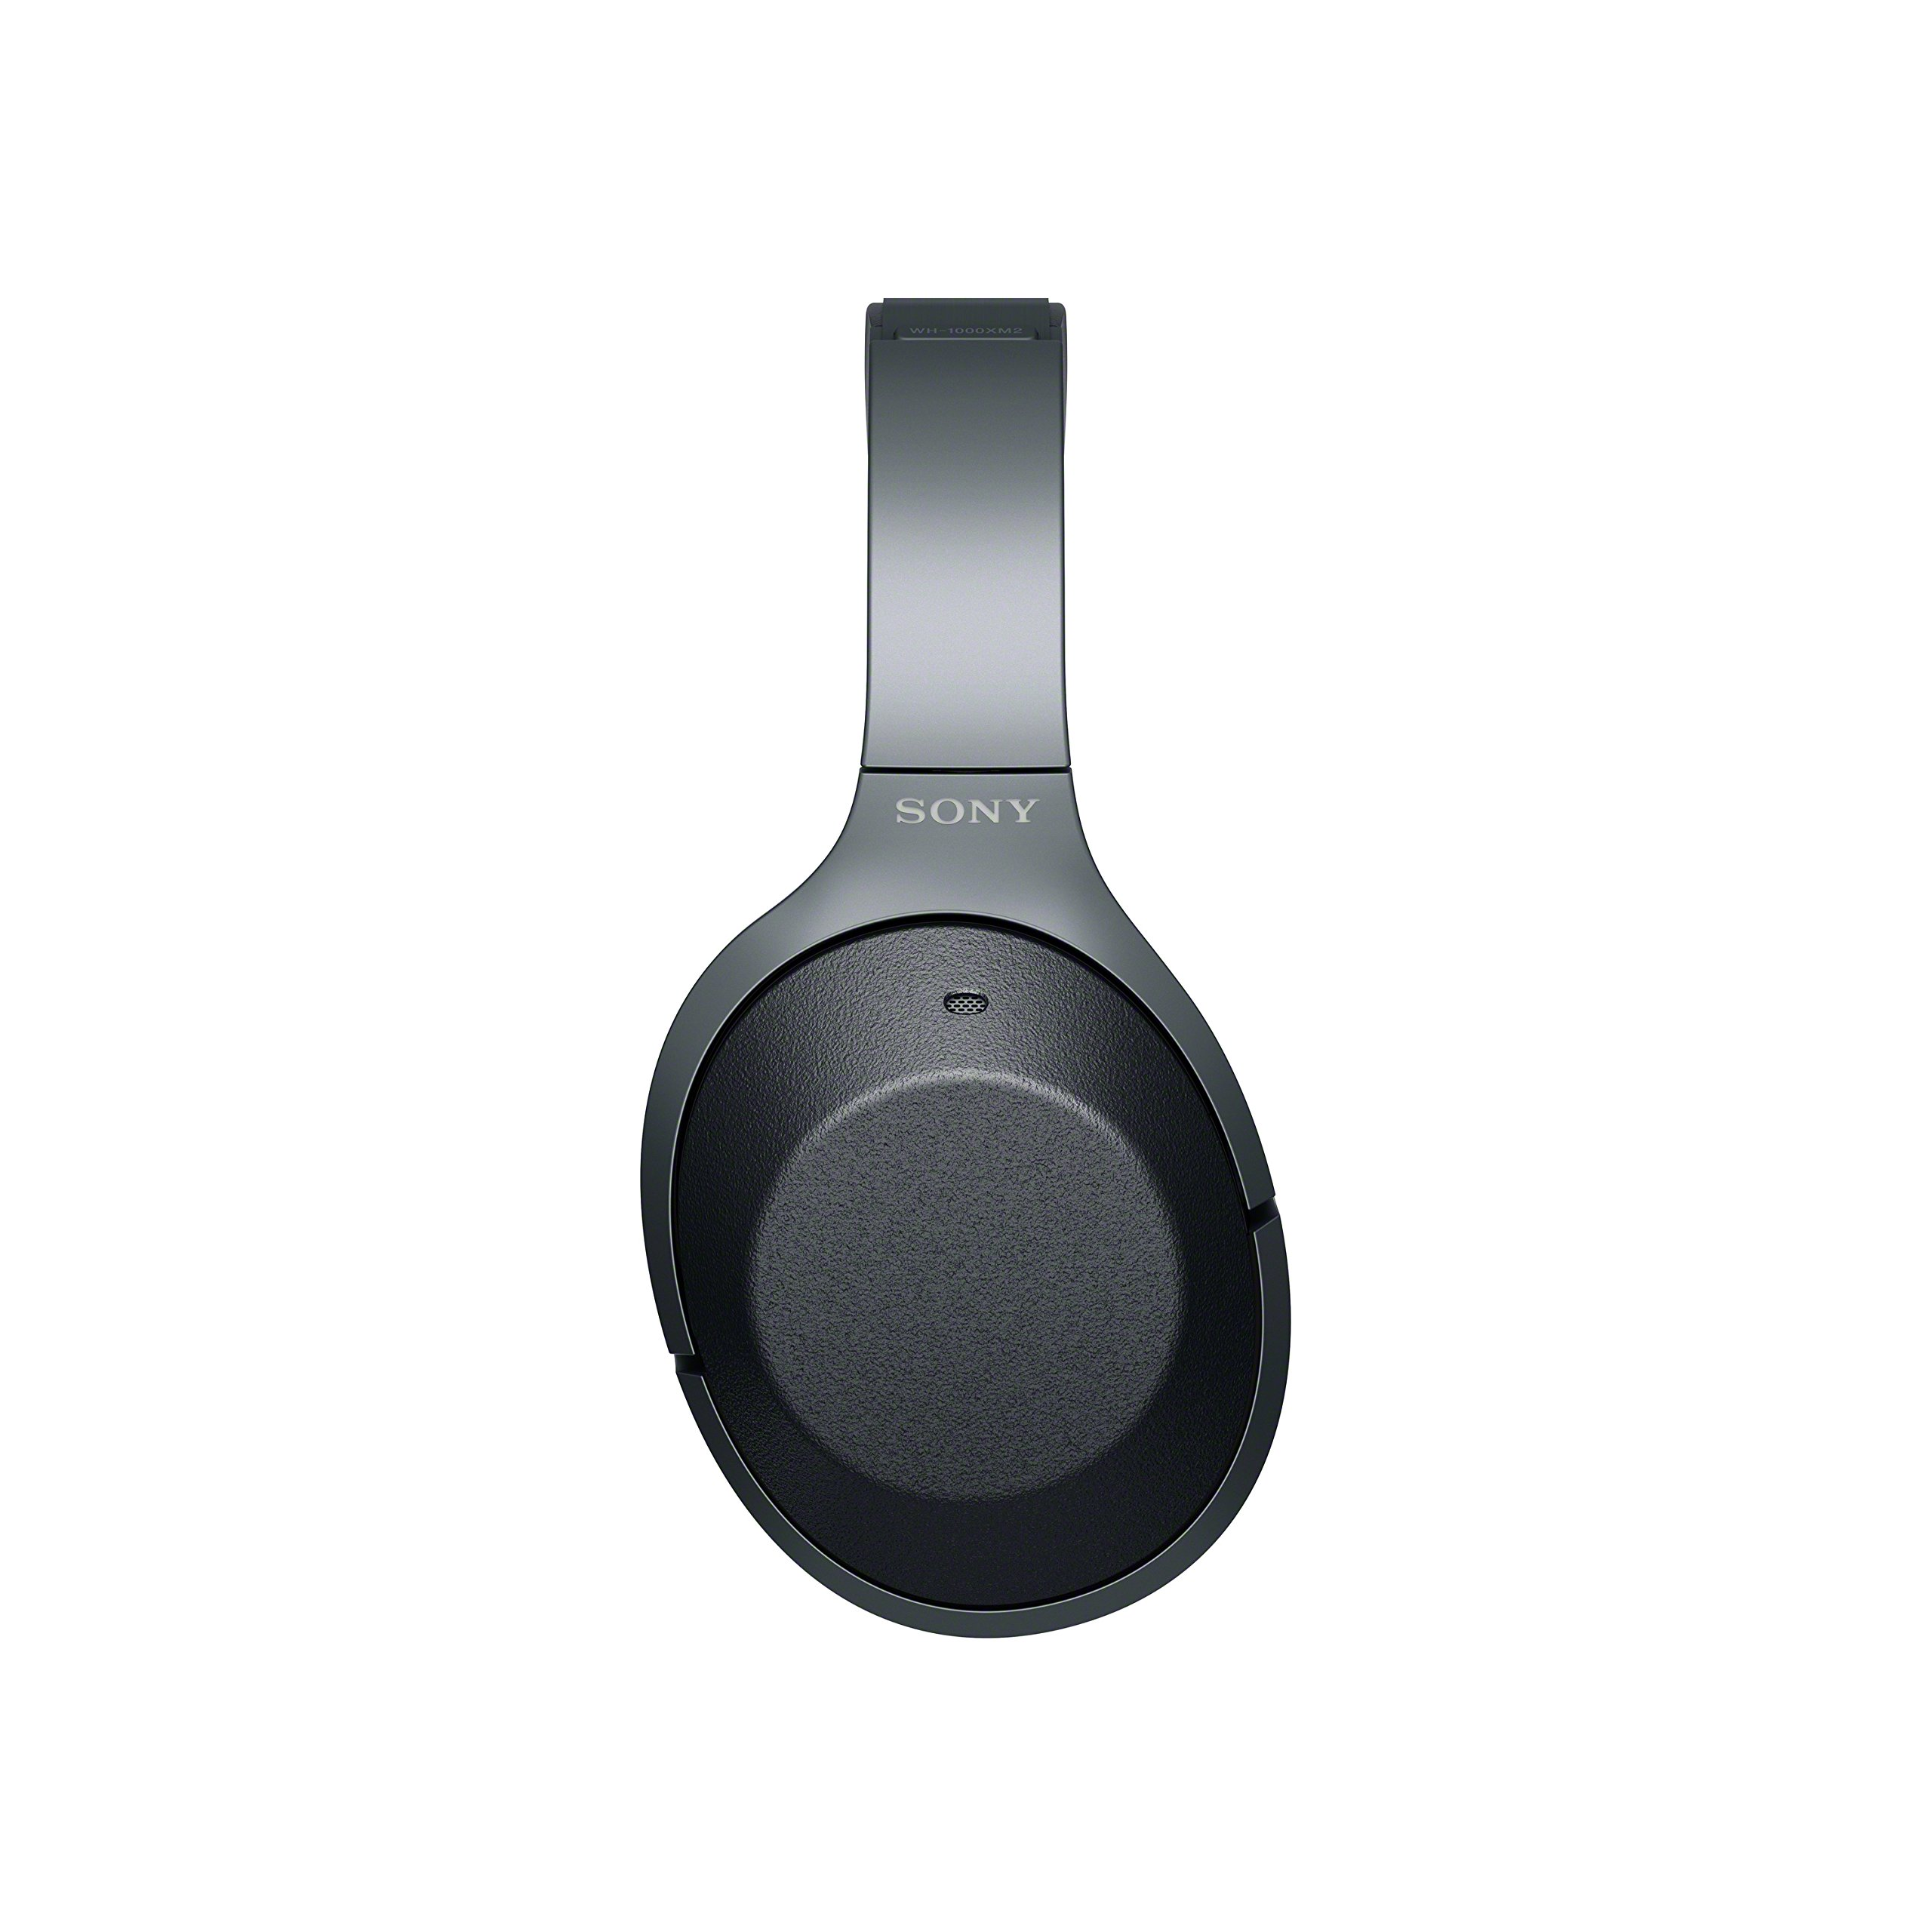 Sony Noise Cancelling Headphones WH1000XM2: Over Ear Wireless Bluetooth Headphones with Case - Black by Sony (Image #3)